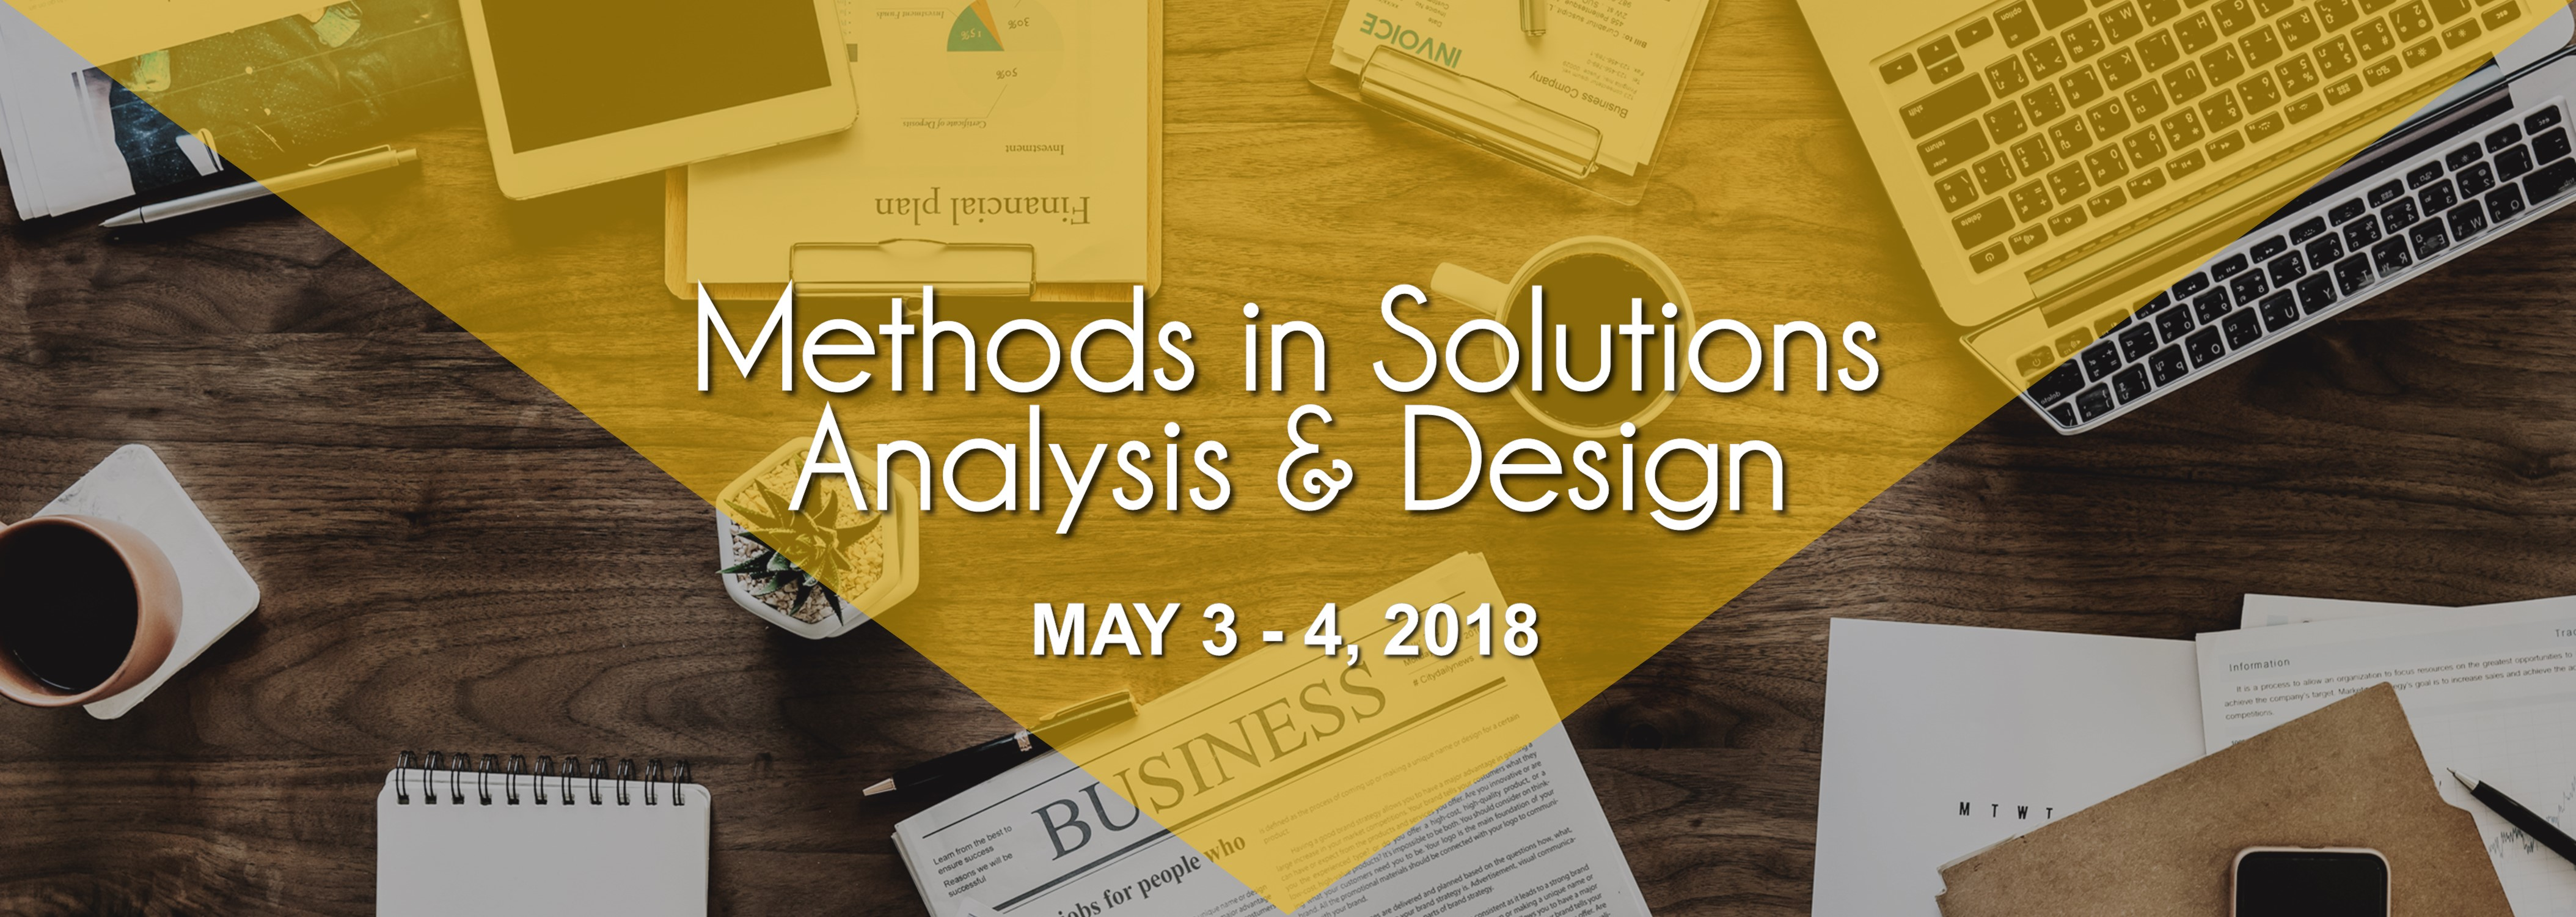 Methods in Solutions Analysis and Design on May 3 - 4, 2018